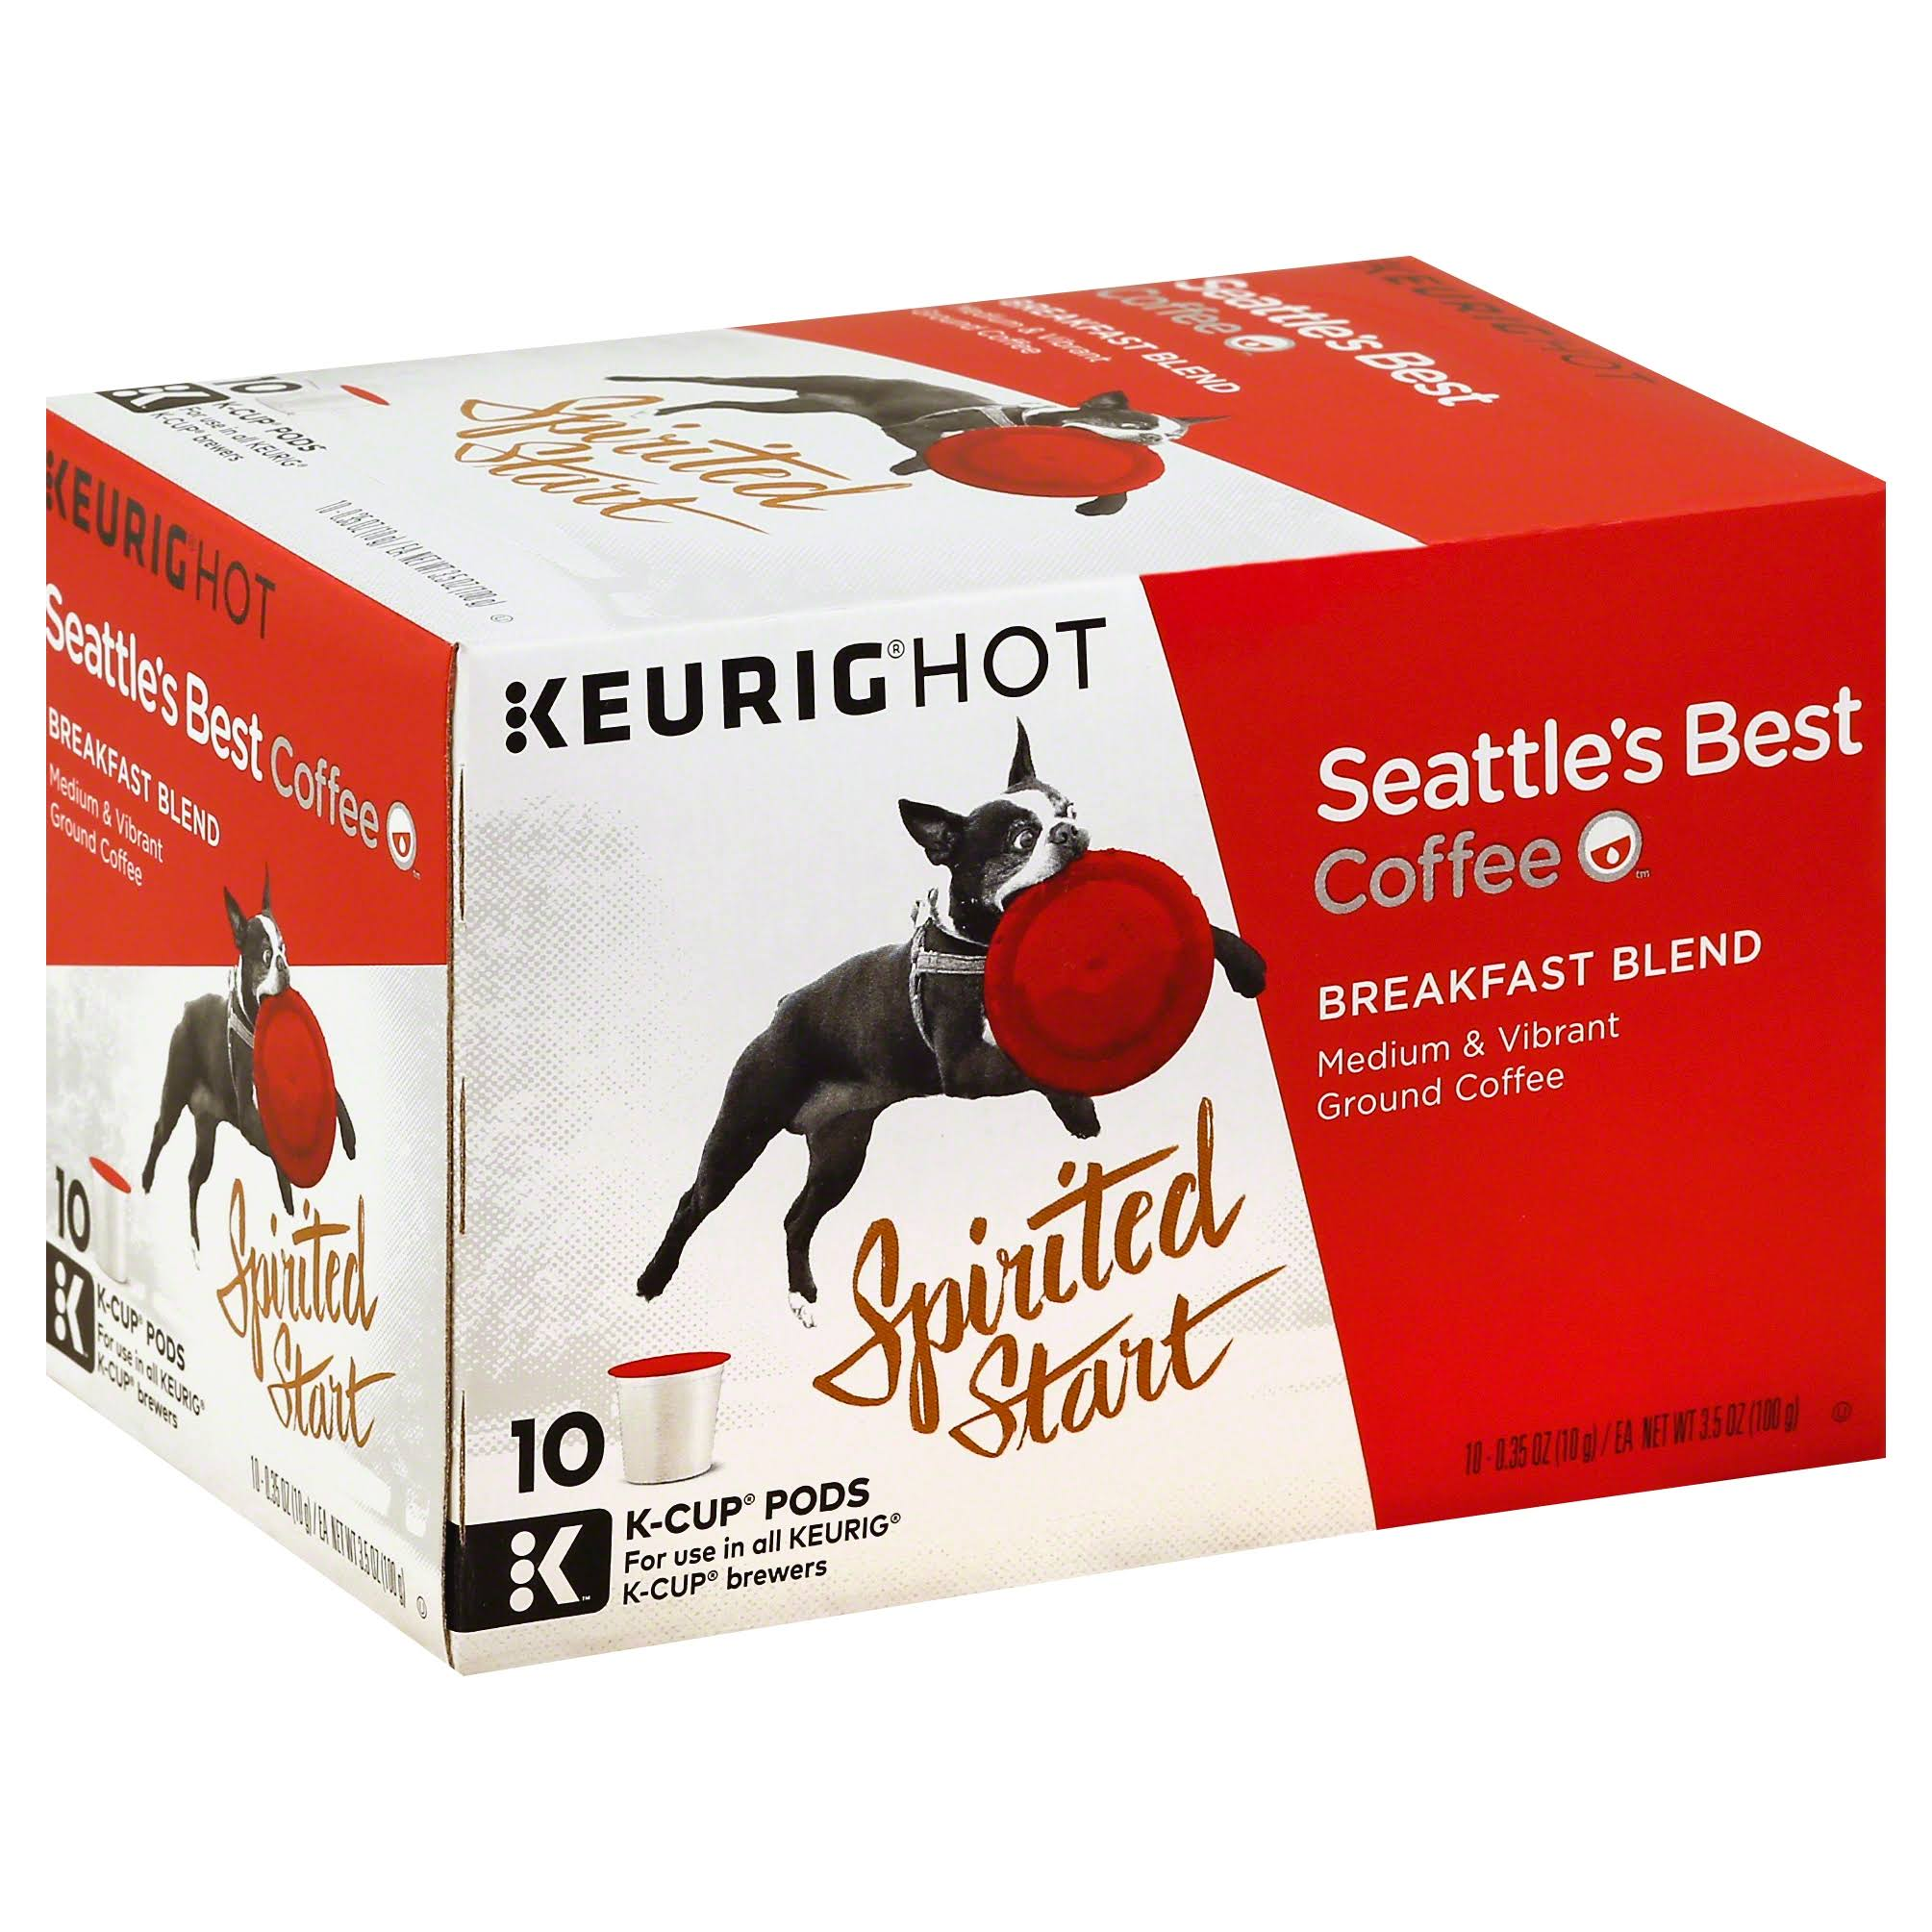 Seattle's Best K Cup Pods Ground Coffee - Breakfast Blend, Medium, 10ct